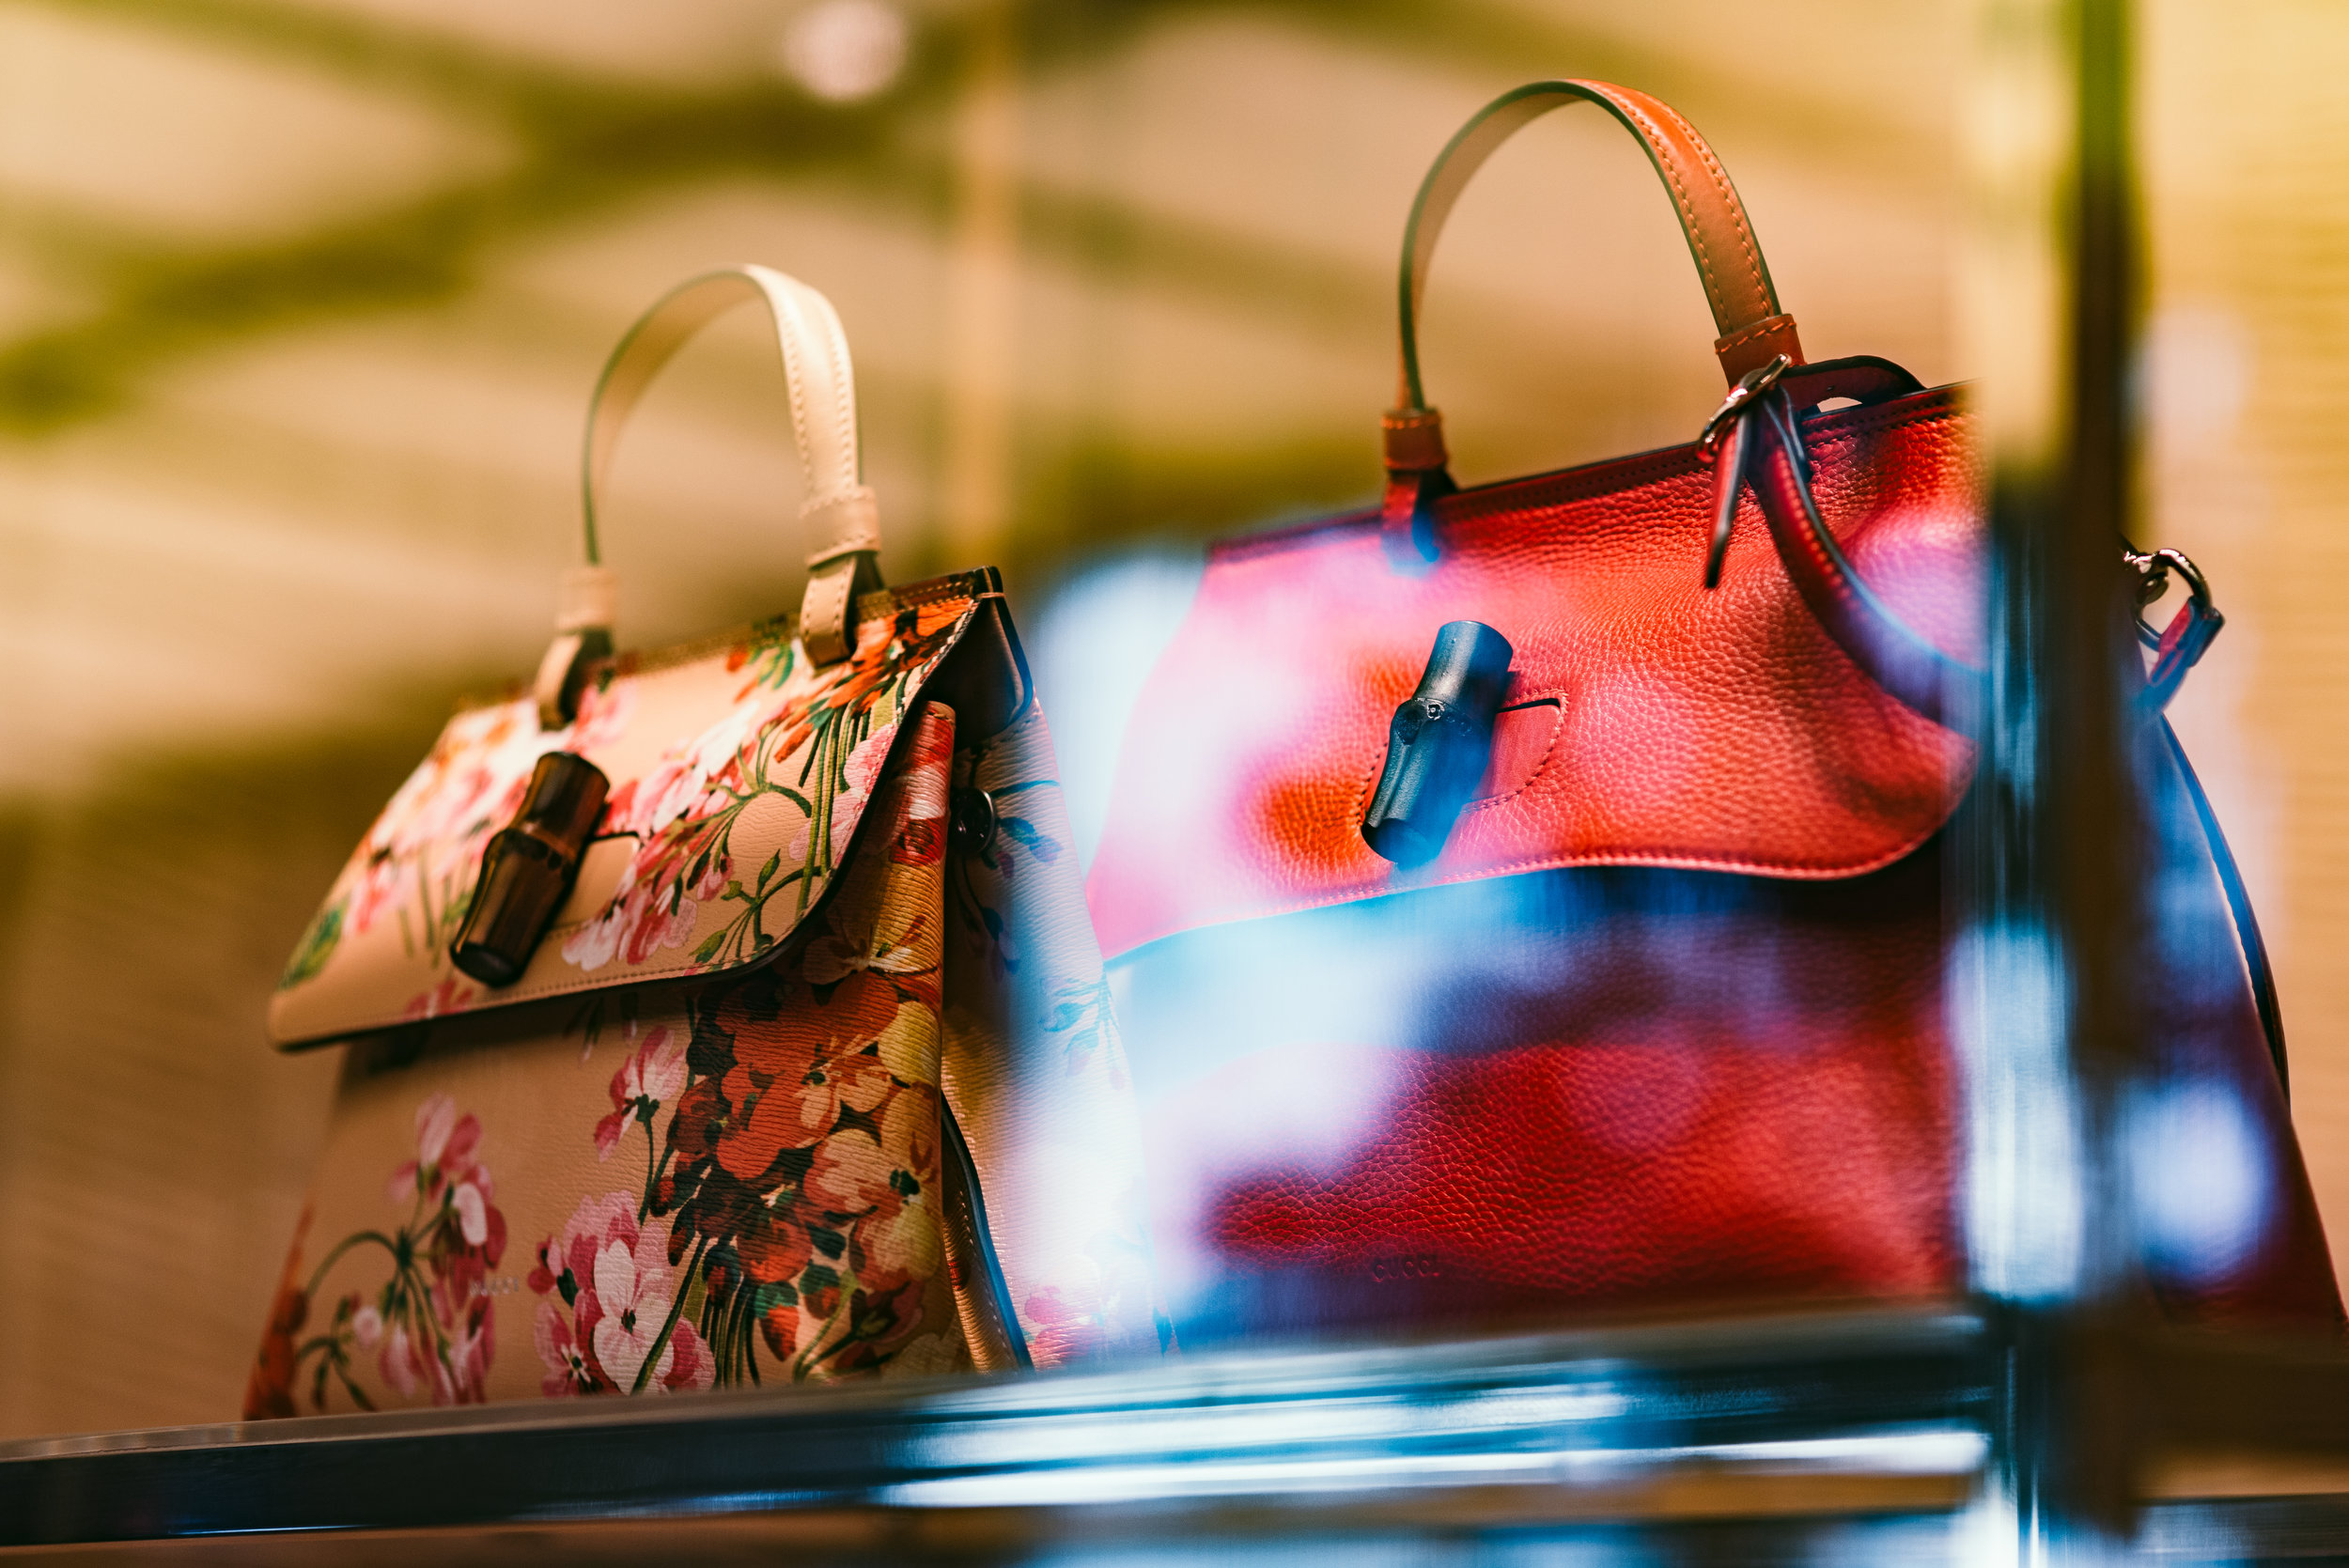 Studio South - The International-37.jpg